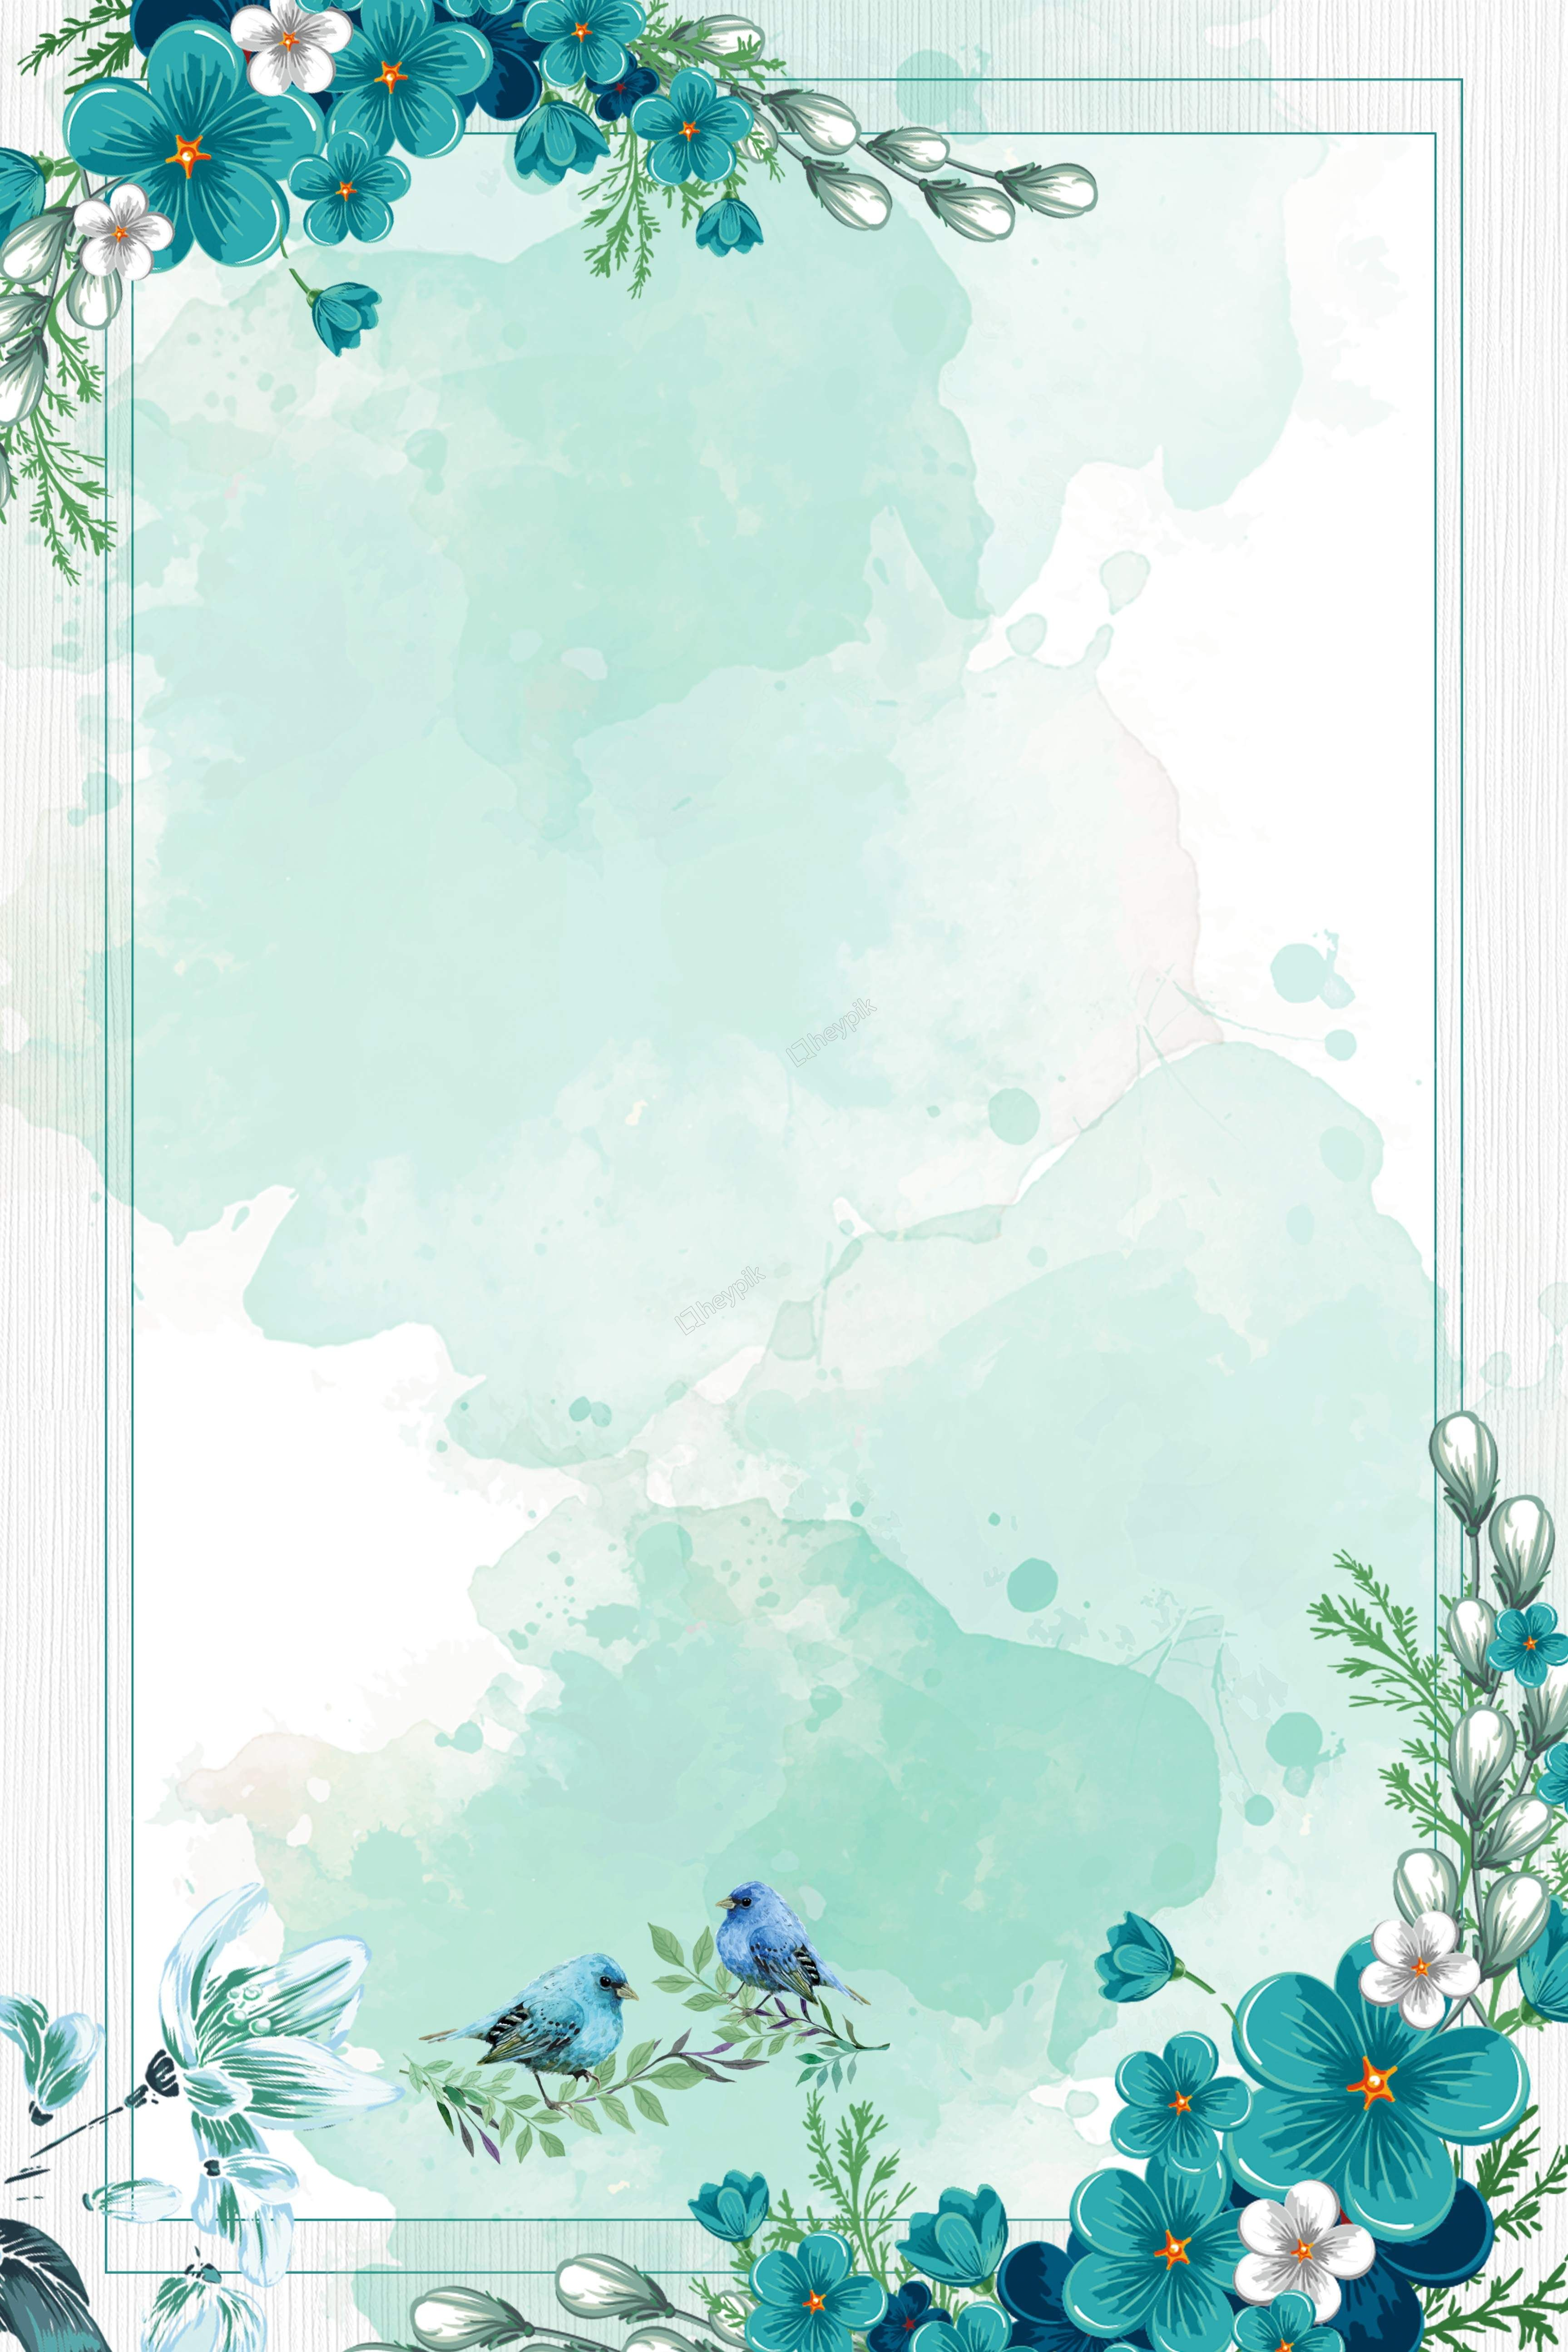 chinese style watercolor blue flowers border background